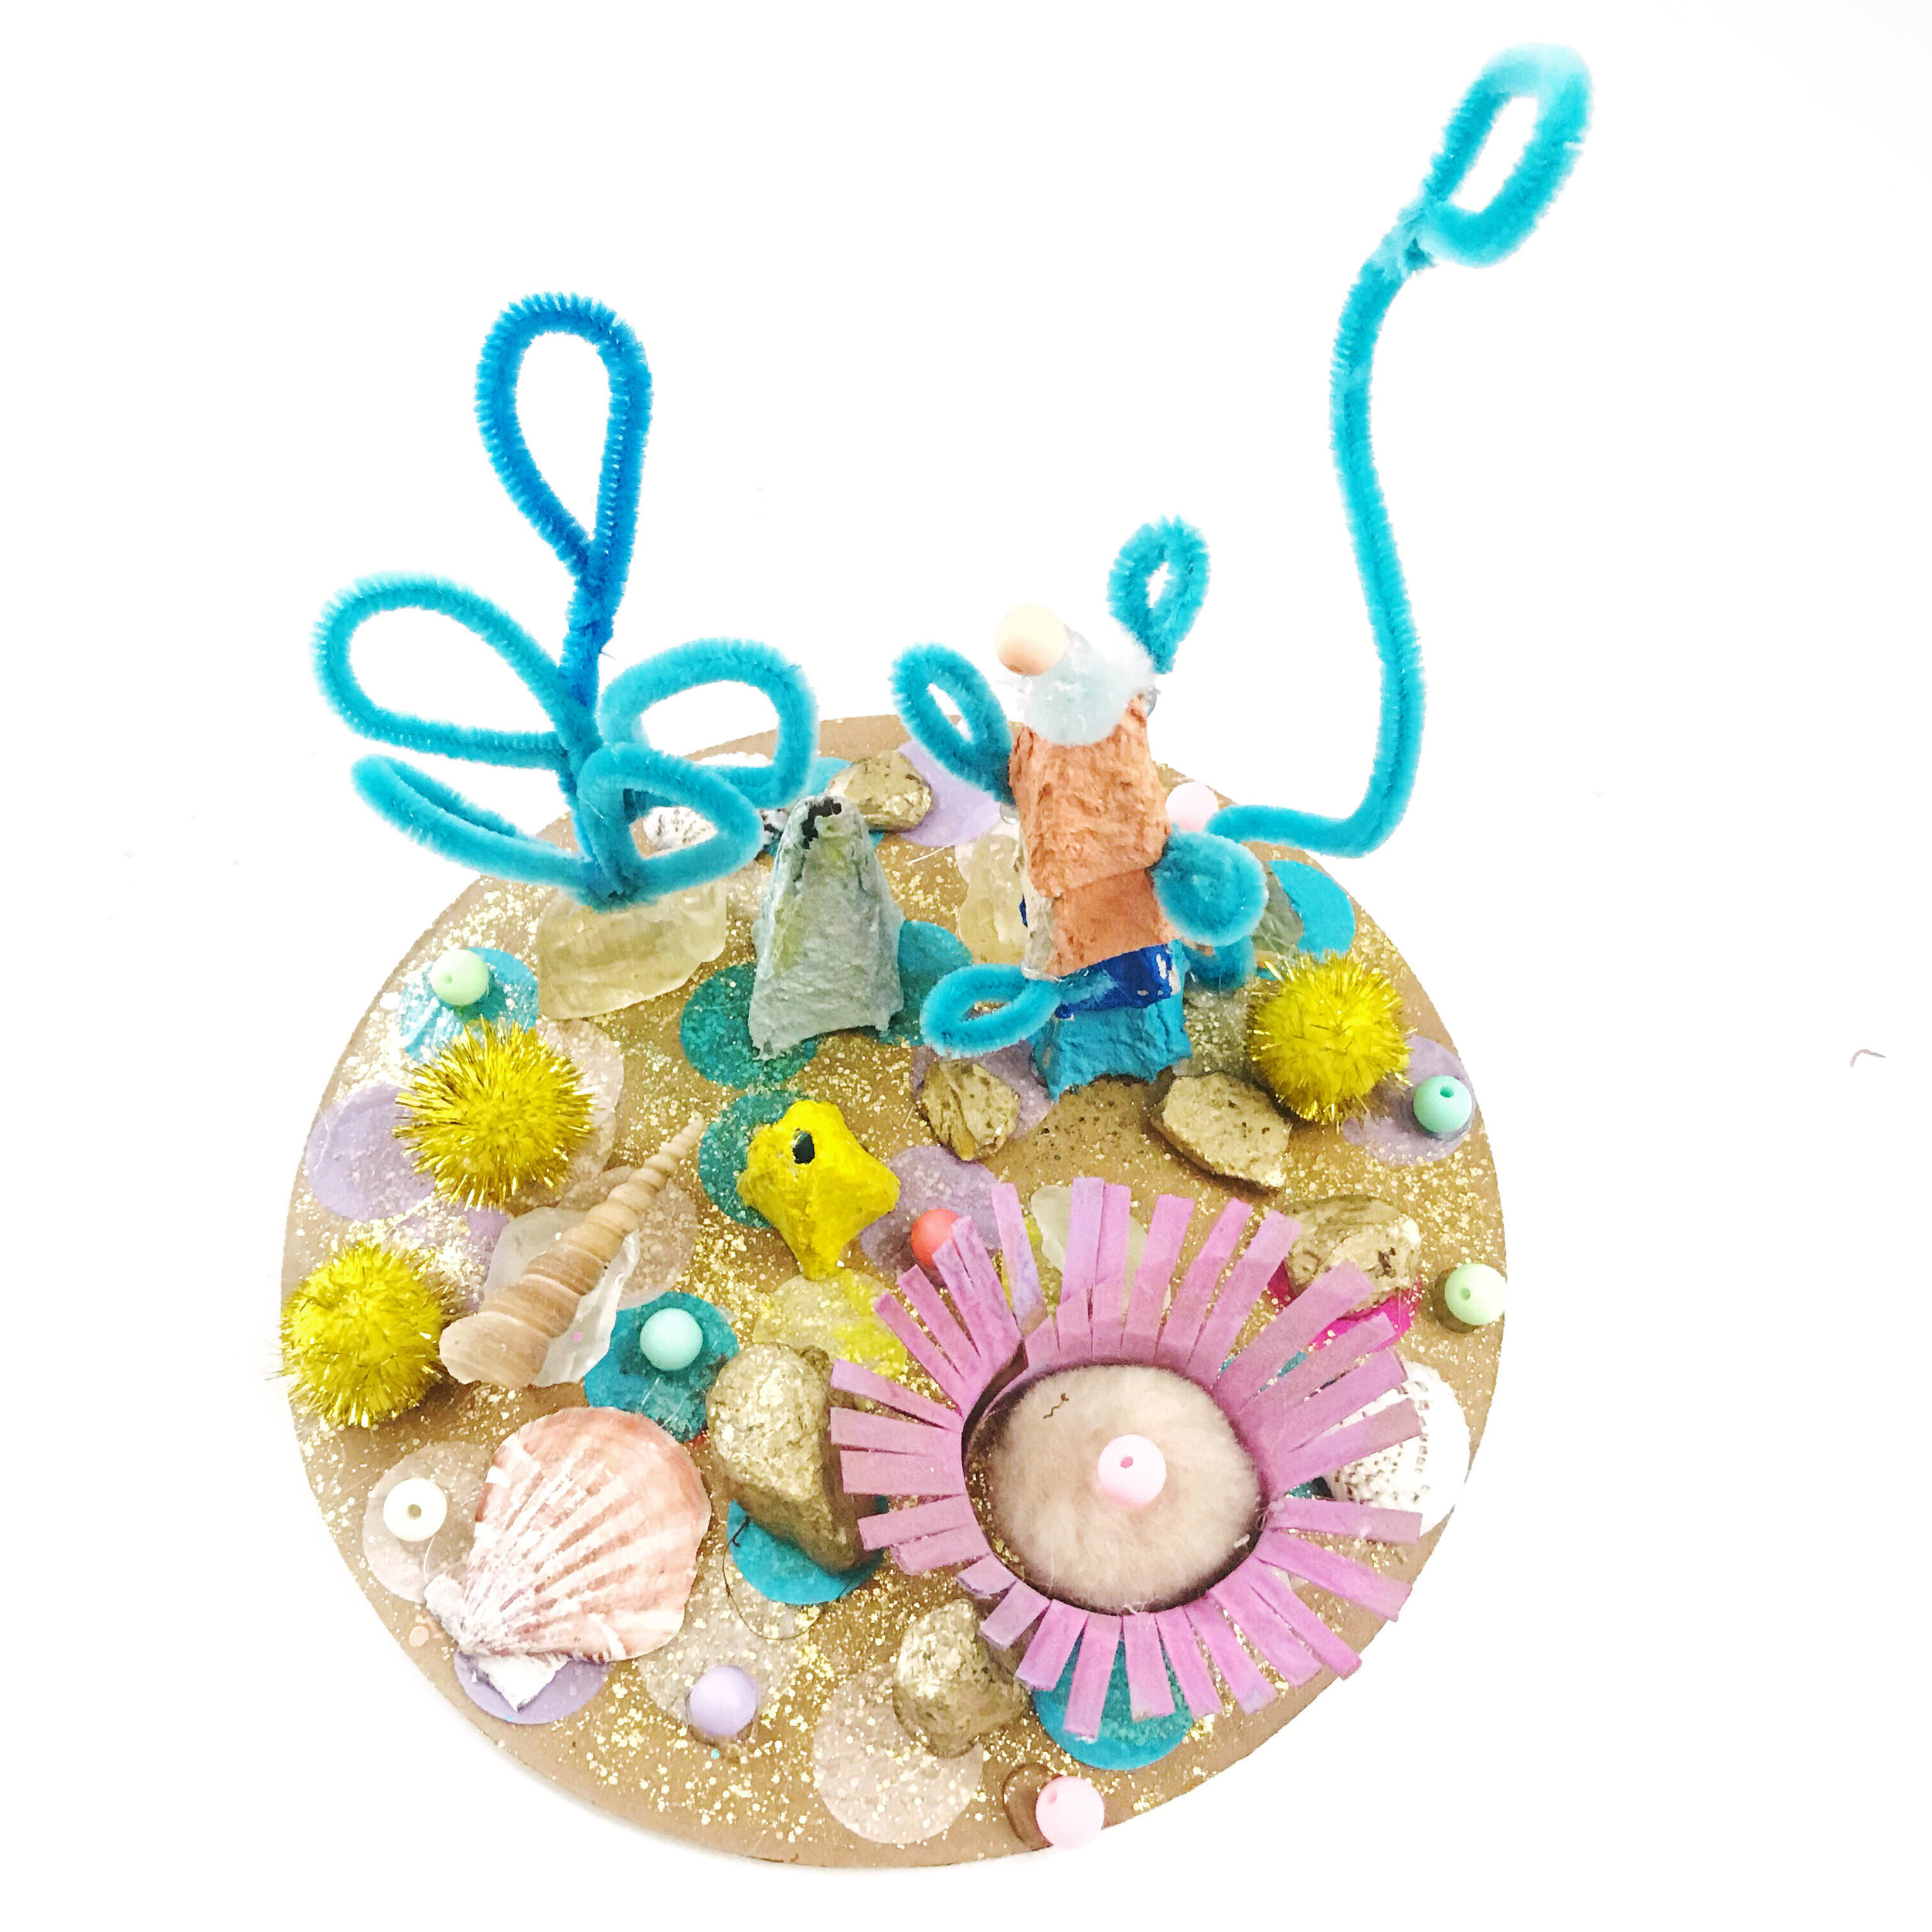 UNDER THE SEA ART PROJECT FOR KIDS